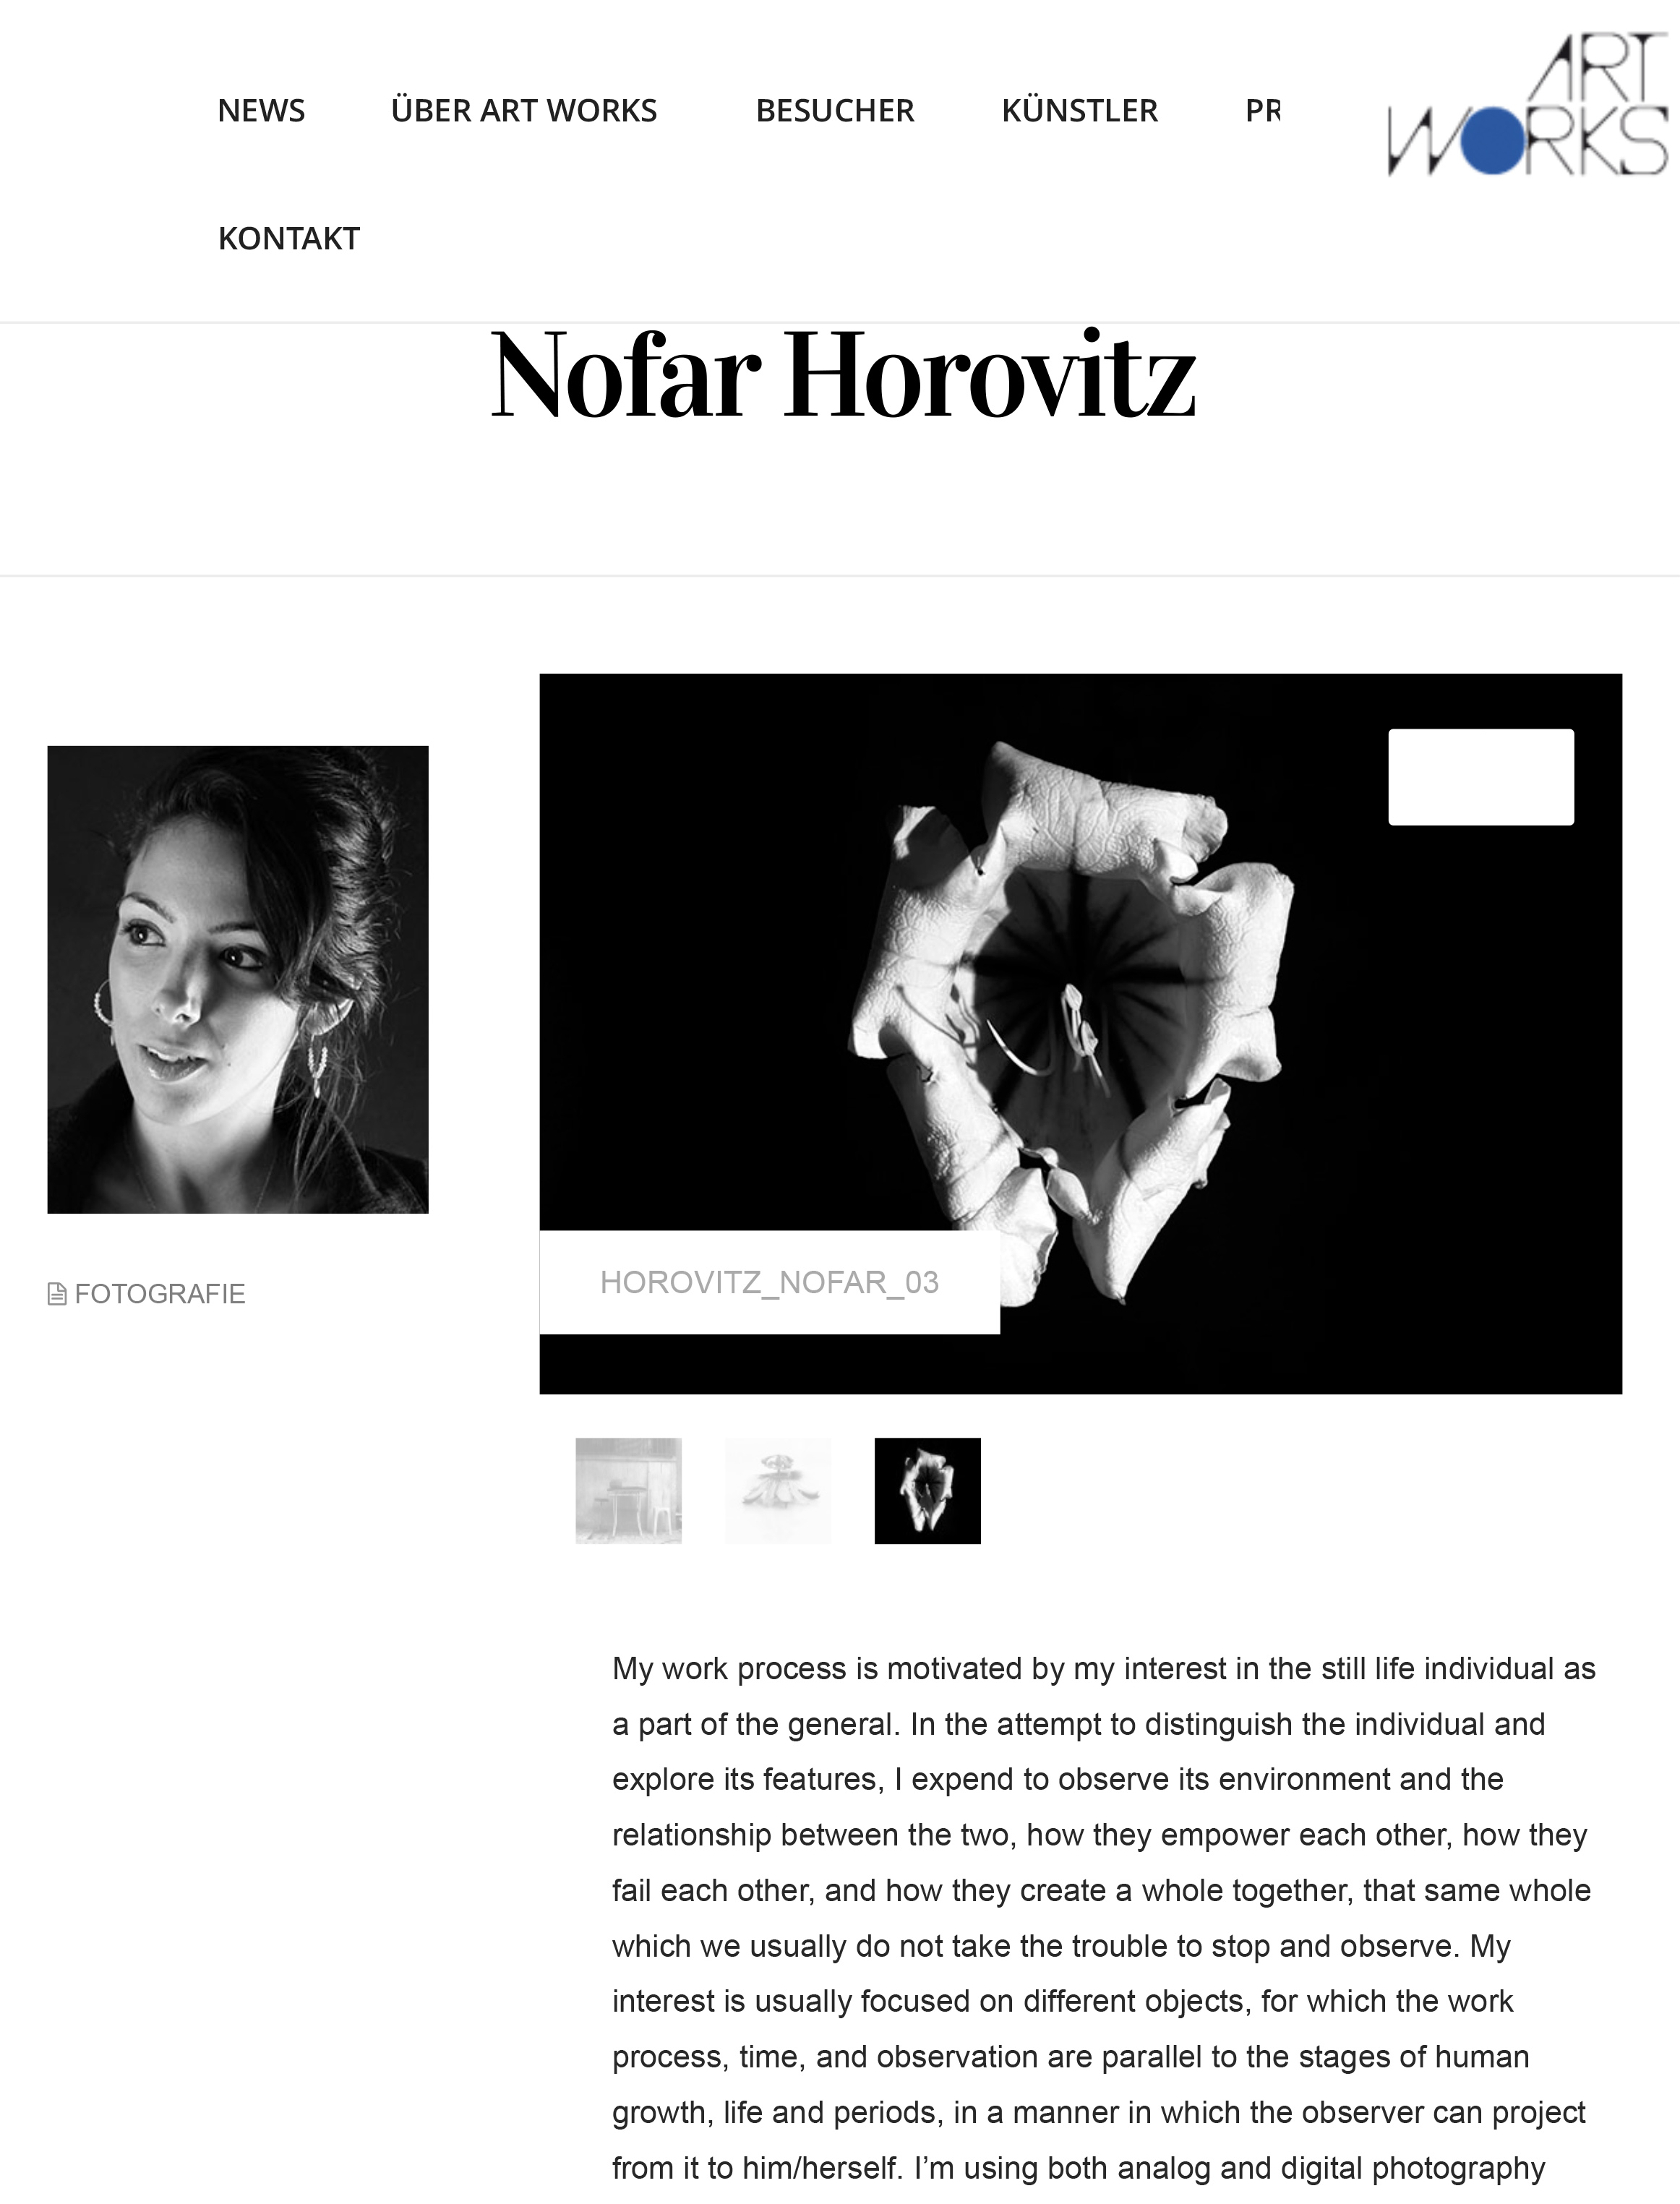 Art about Nofar Horovitz